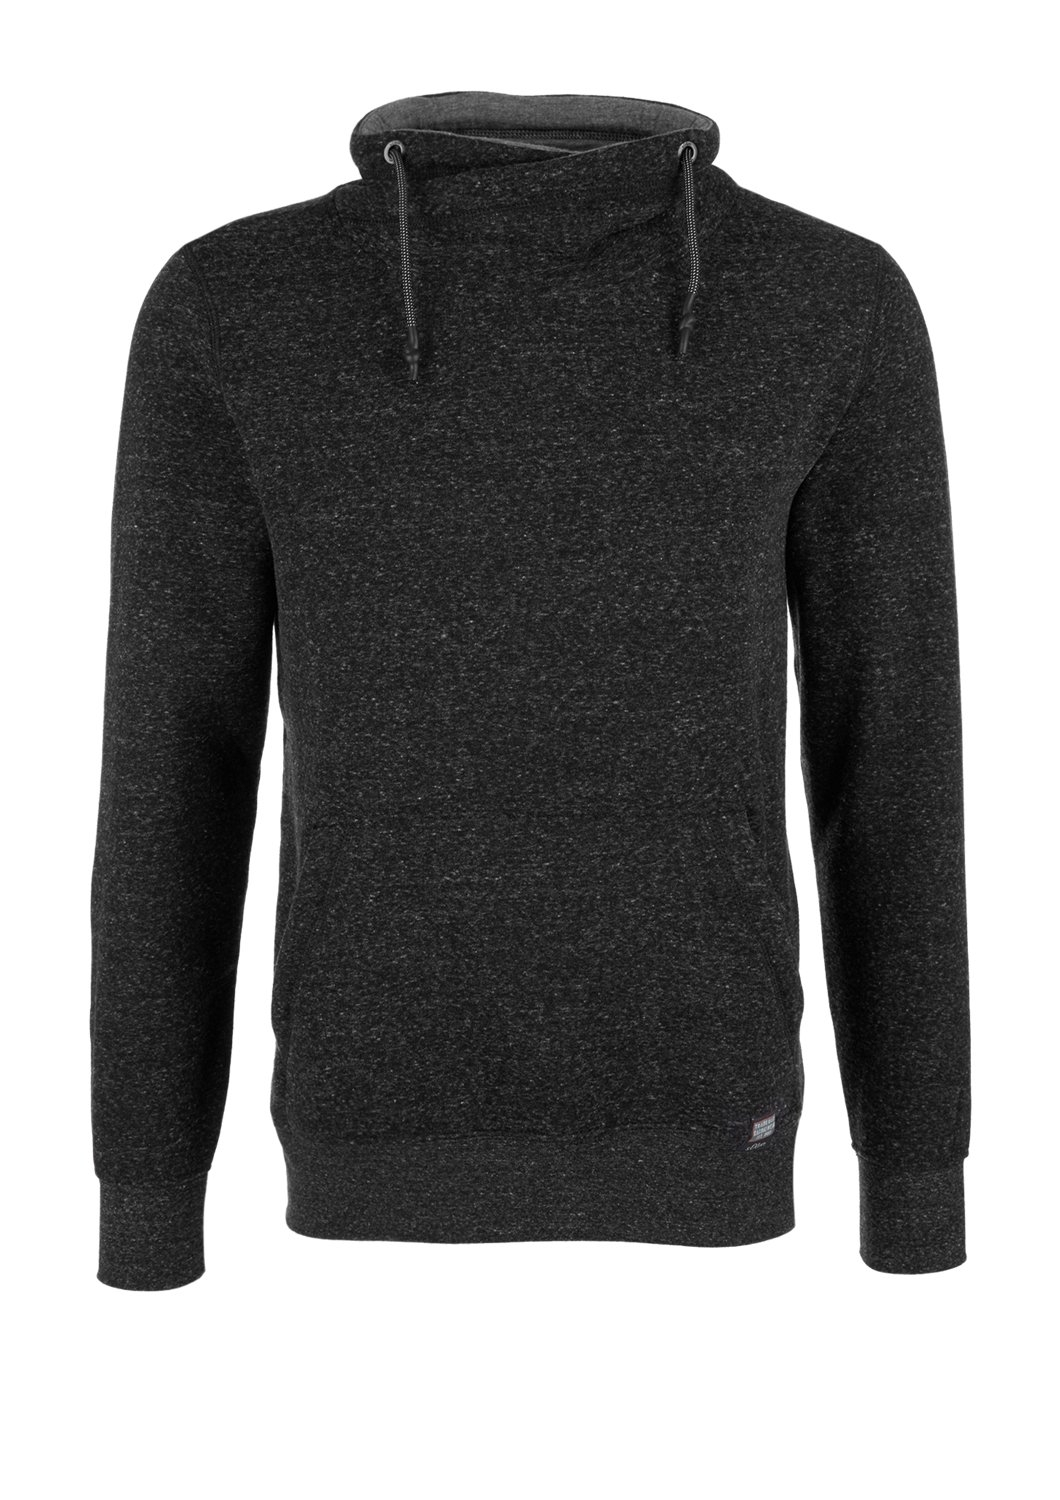 Koop Sweatshirt Turtleneck S Red Label Gemêleerd Met Je Bij oliver TF1lJcK